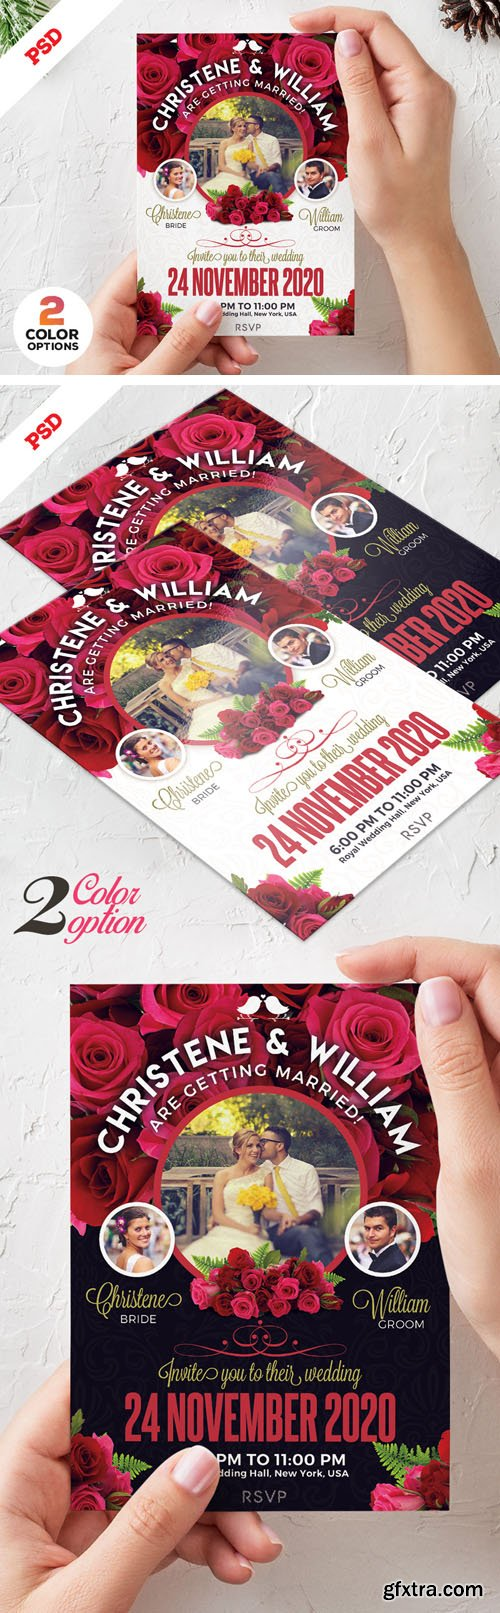 Wedding Invitation Card PSD Template Set